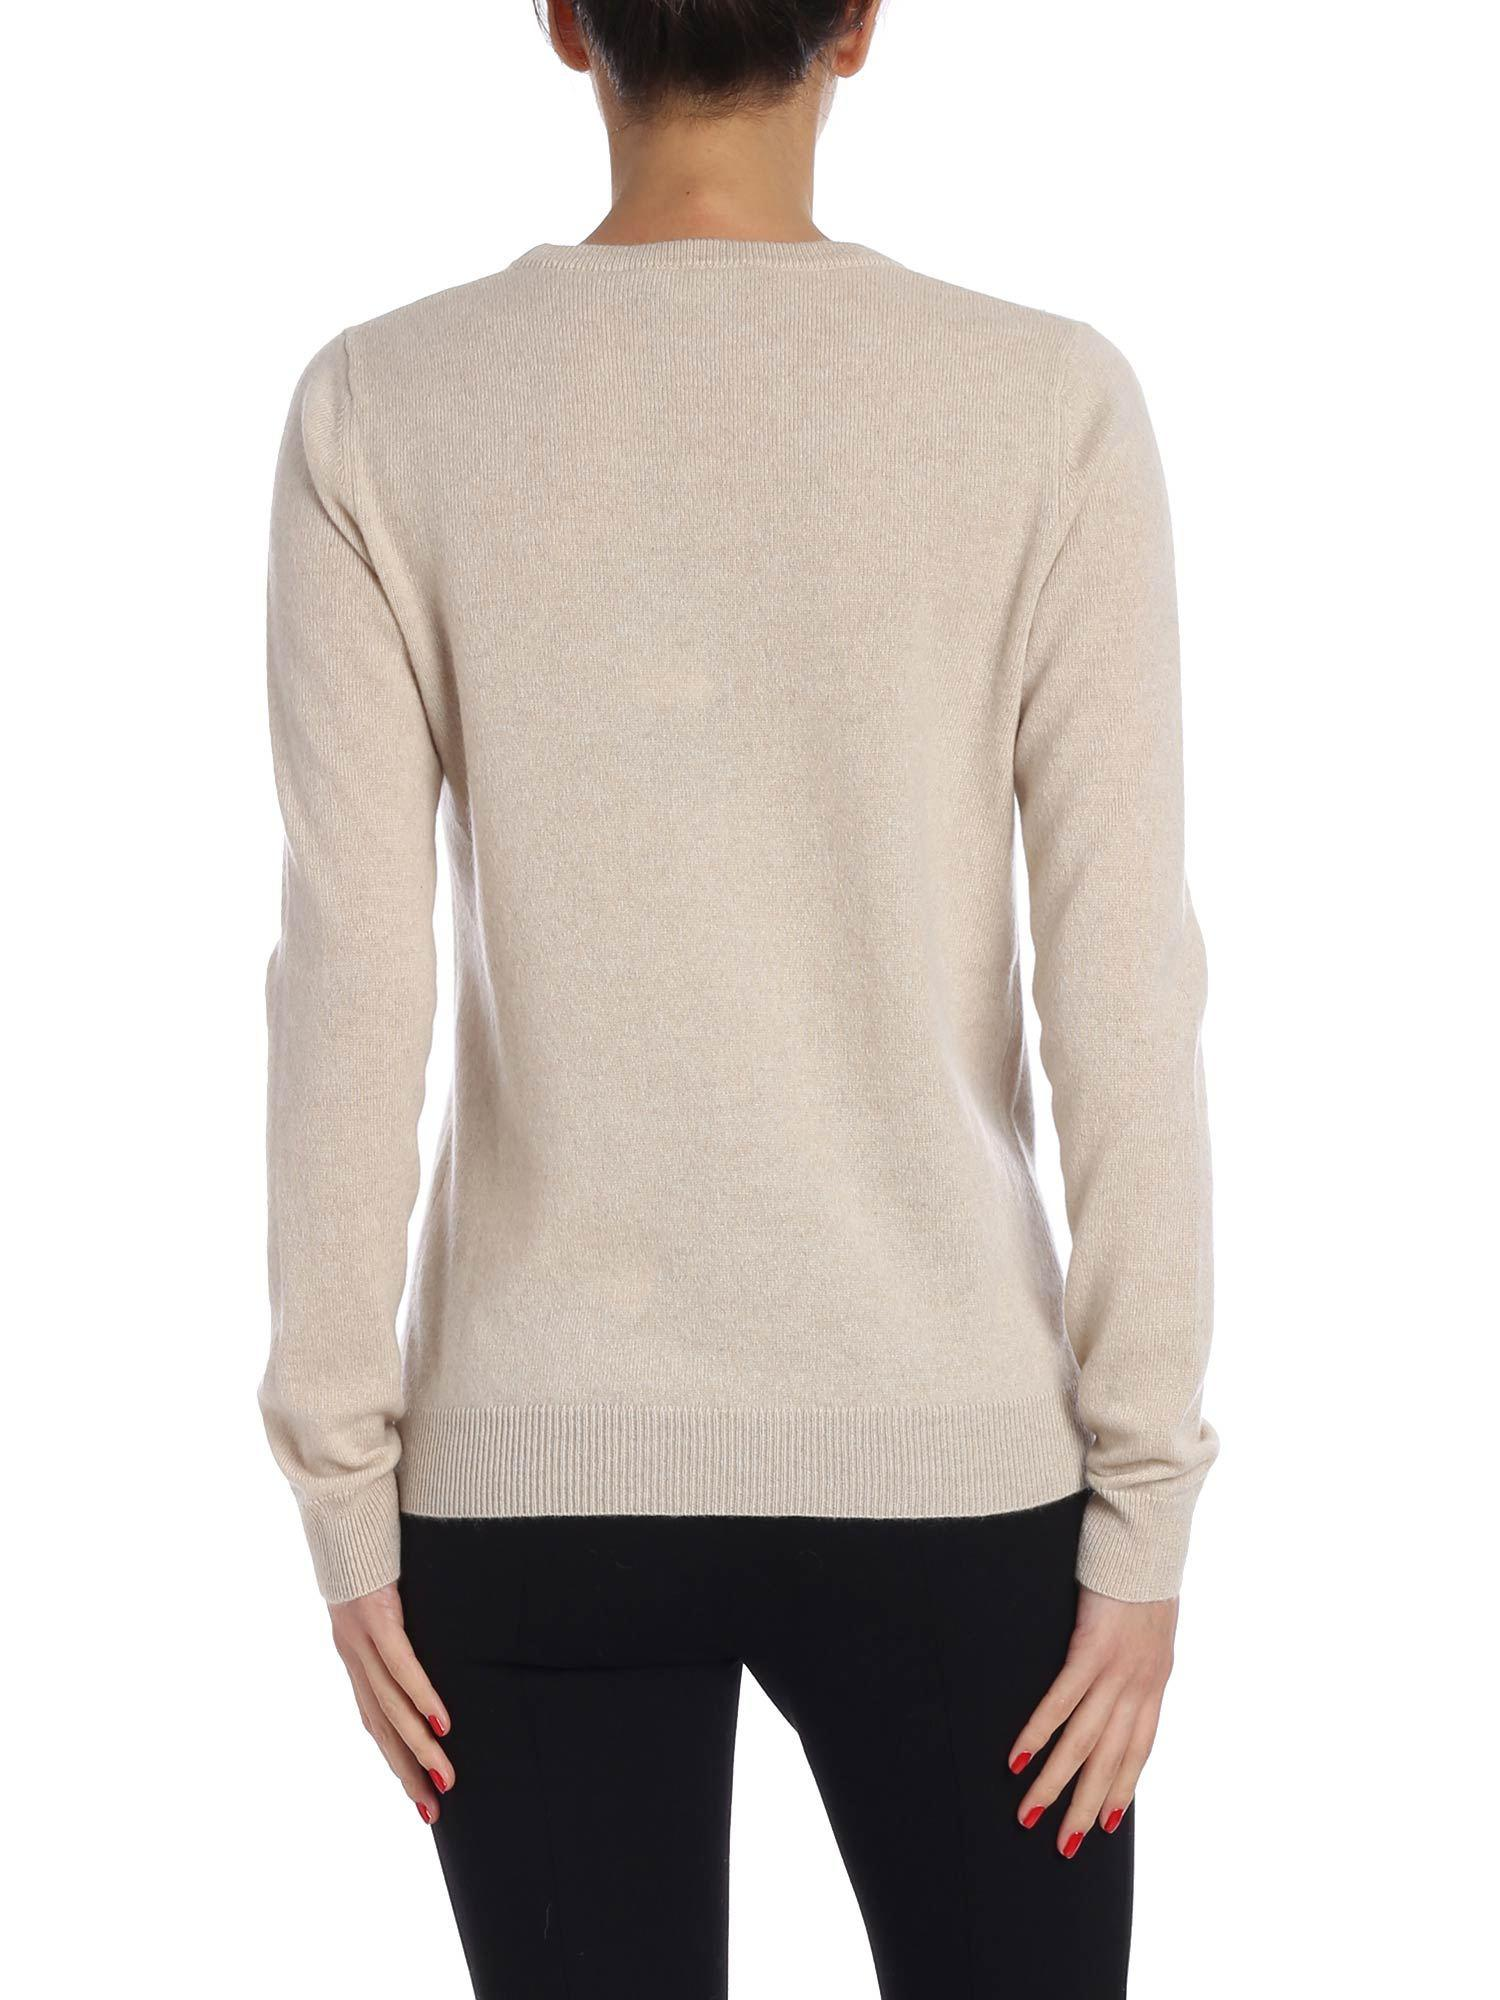 Weekend In By Lyst Pullover Maxmara Cashmere Natural Beige Ottobre qnHRaBw6q